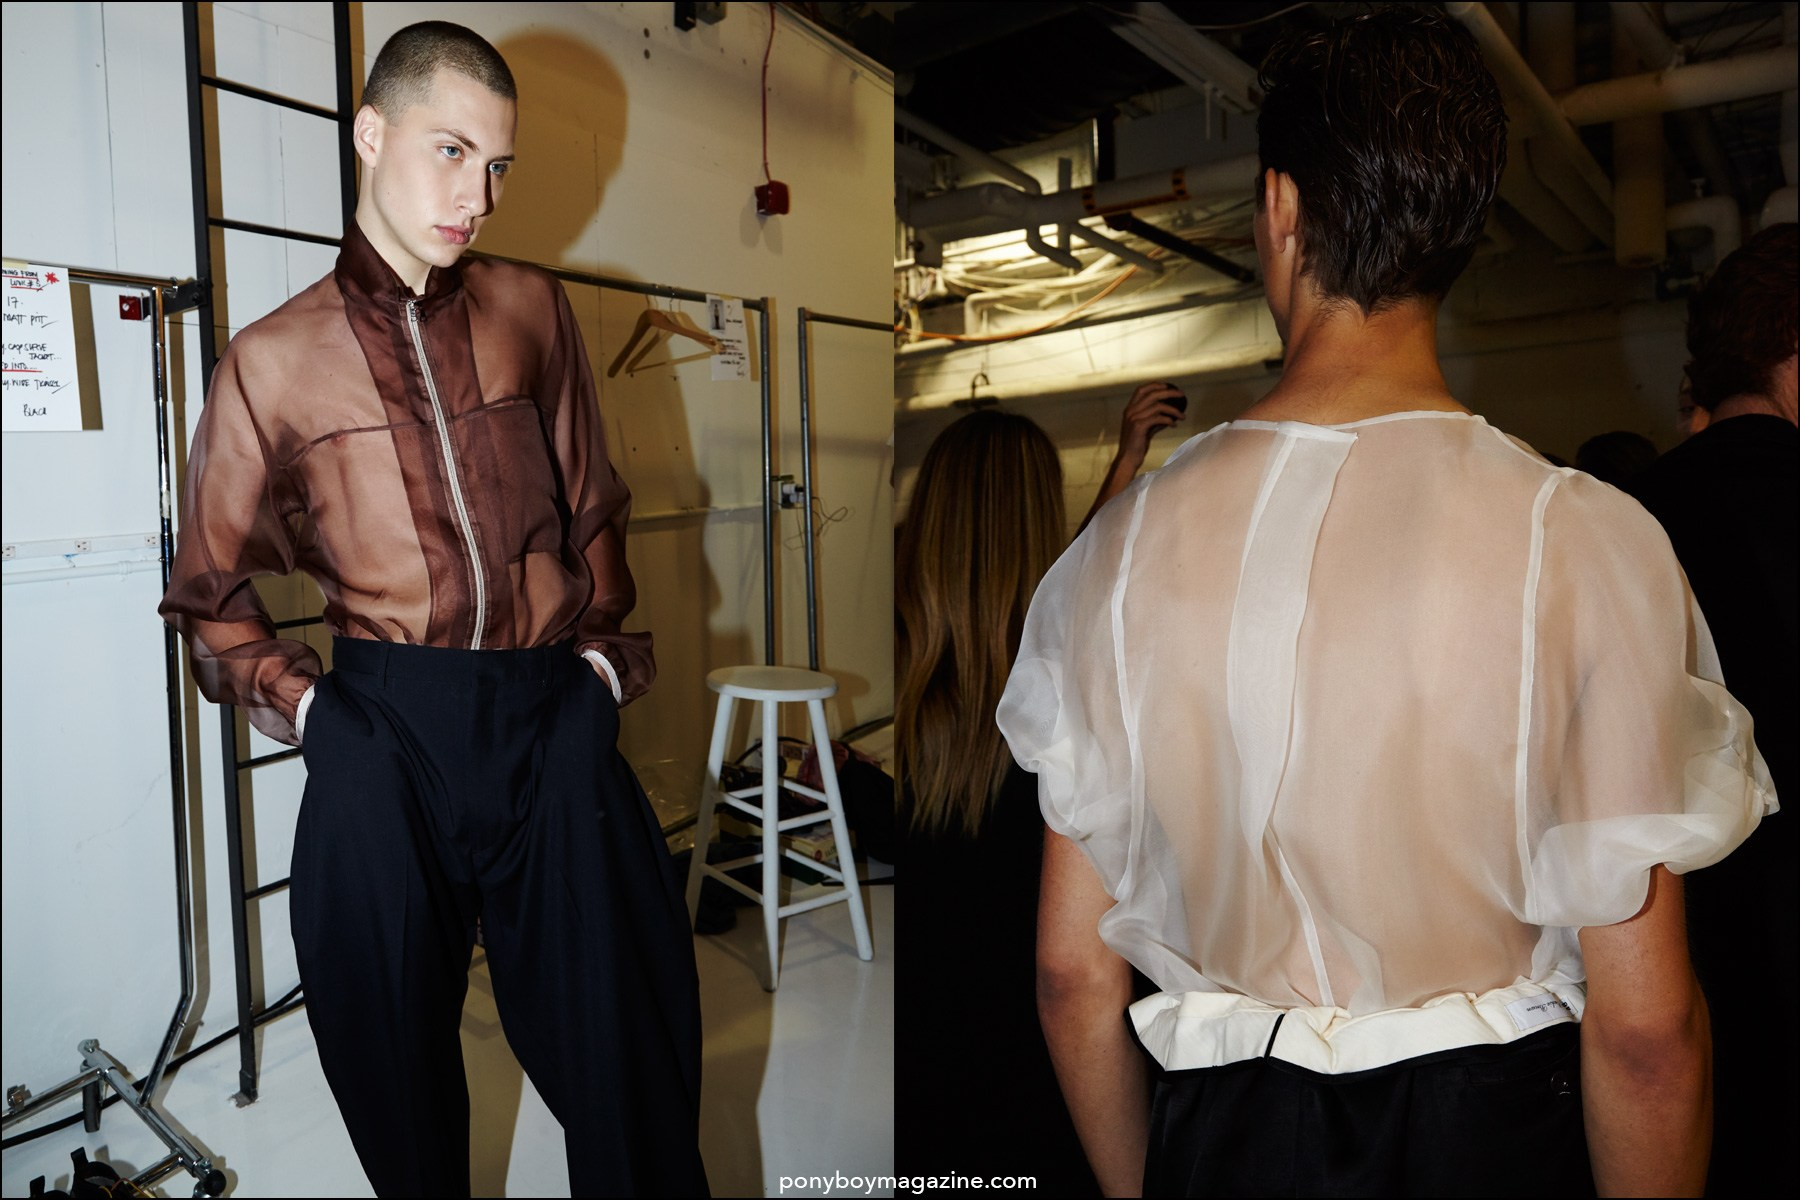 Models in sheer organza shirts, backstage at Duckie Brown Spring/Summer 2016 collection. Photography by Alexander Thompson for Ponyboy magazine NY.